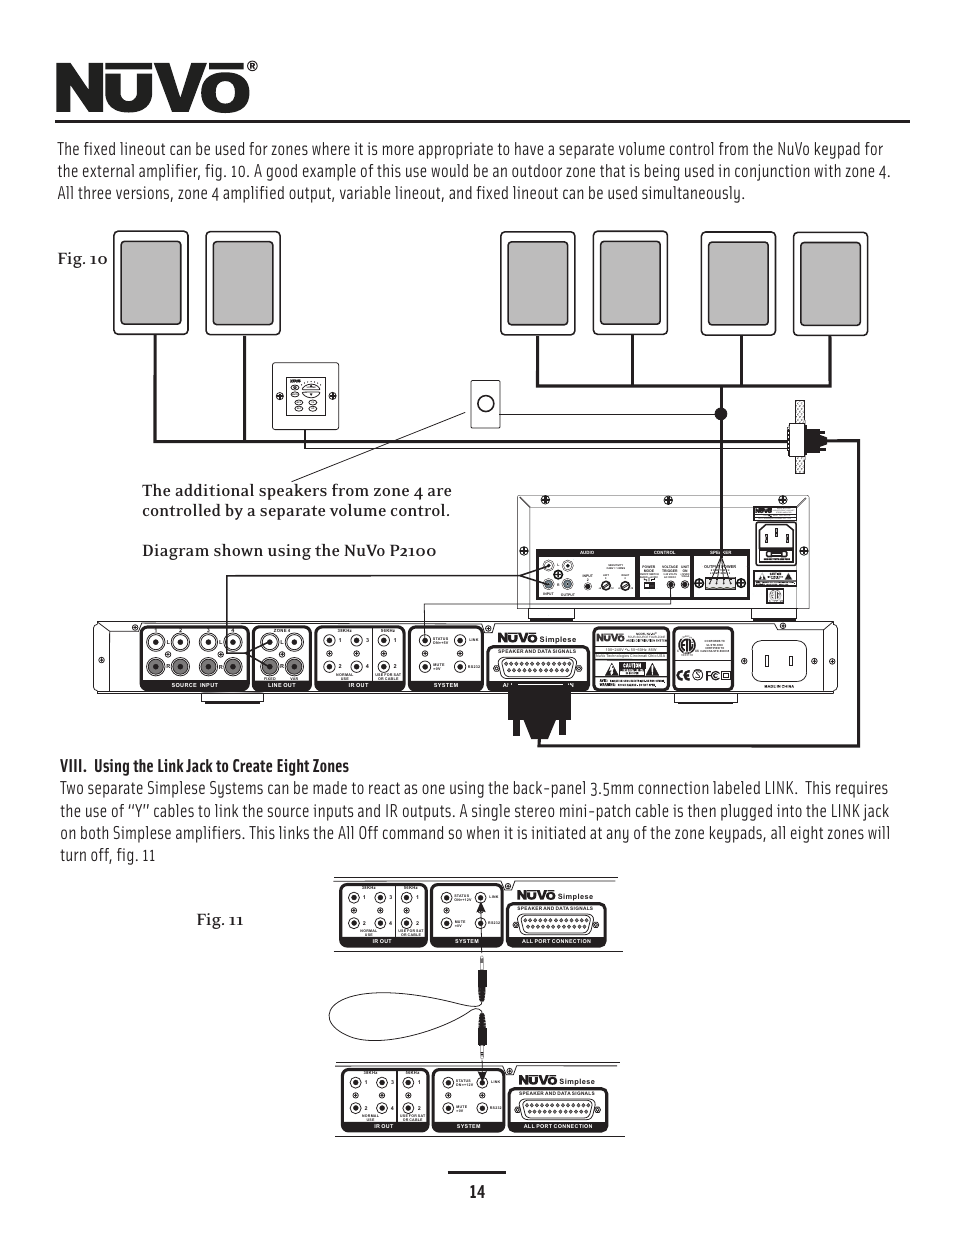 nuvo-wiring-diagram-6 Nuvo Essentia Wiring Diagram on air compressor, wire trailer, driving light, 4 pin relay, fog light, limit switch, basic electrical, ignition switch, camper trailer, ford alternator, simple motorcycle, dump trailer, dc motor, boat battery,